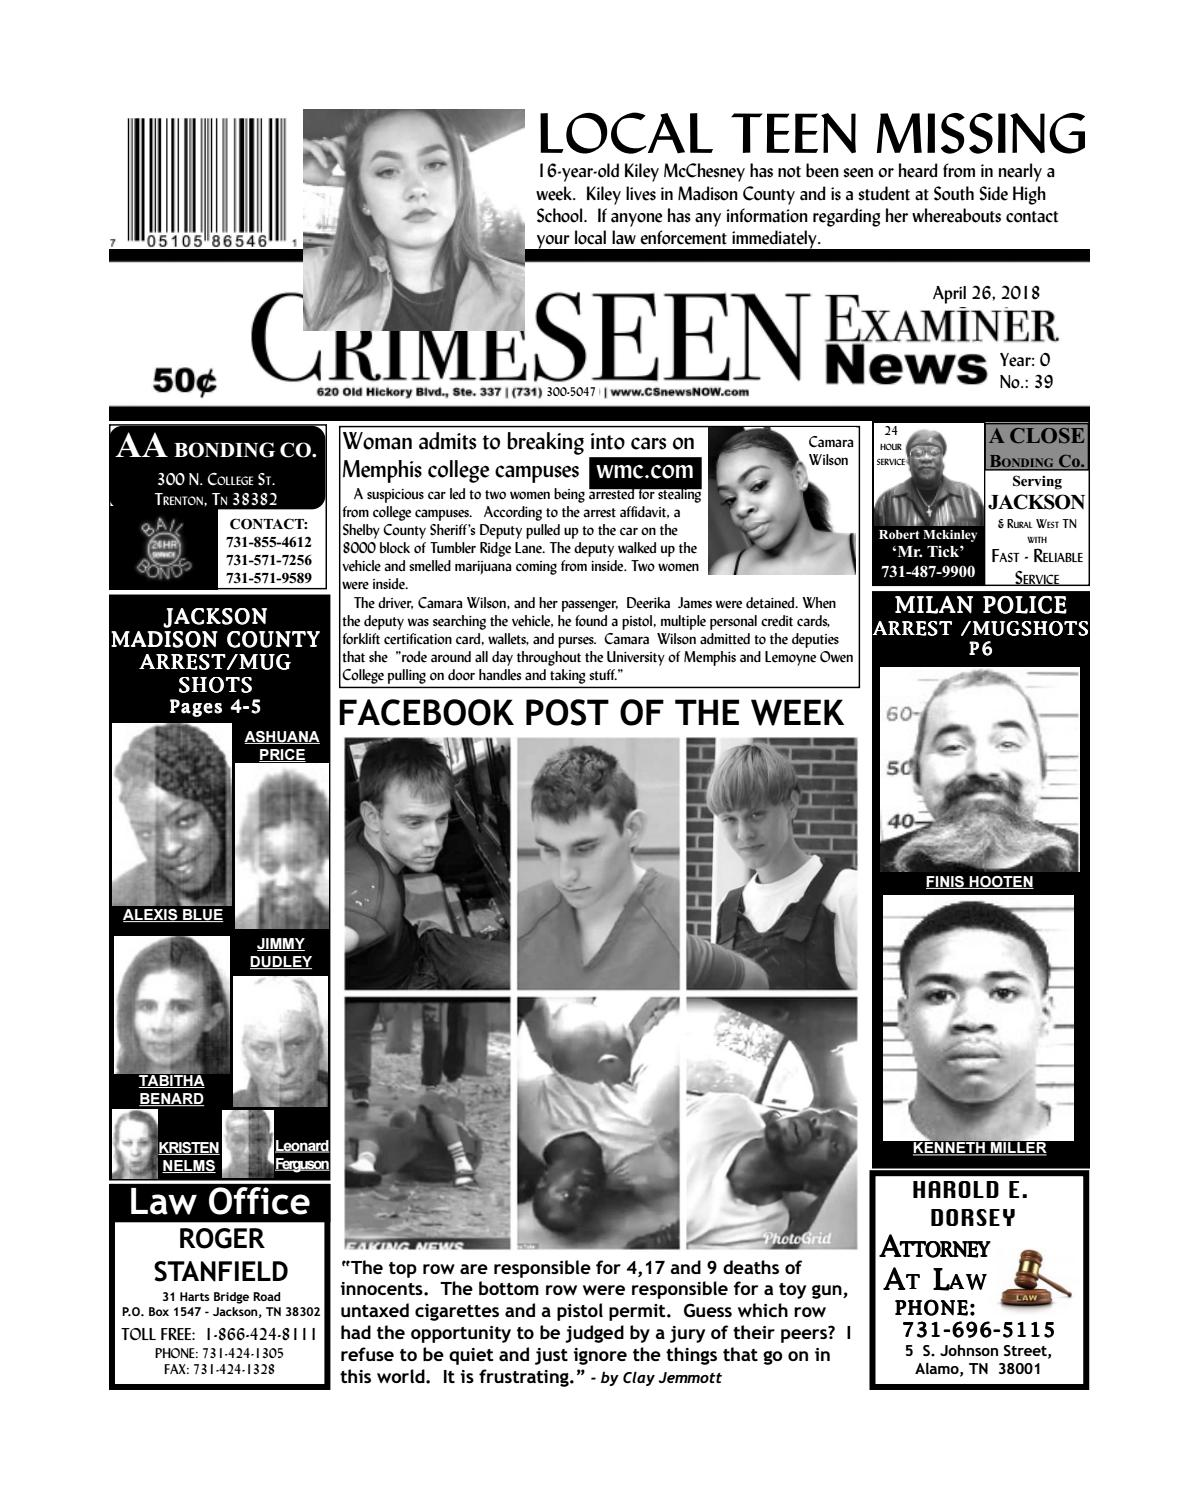 Cse News April 26 2018 By Crimeseen Examiner Issuu